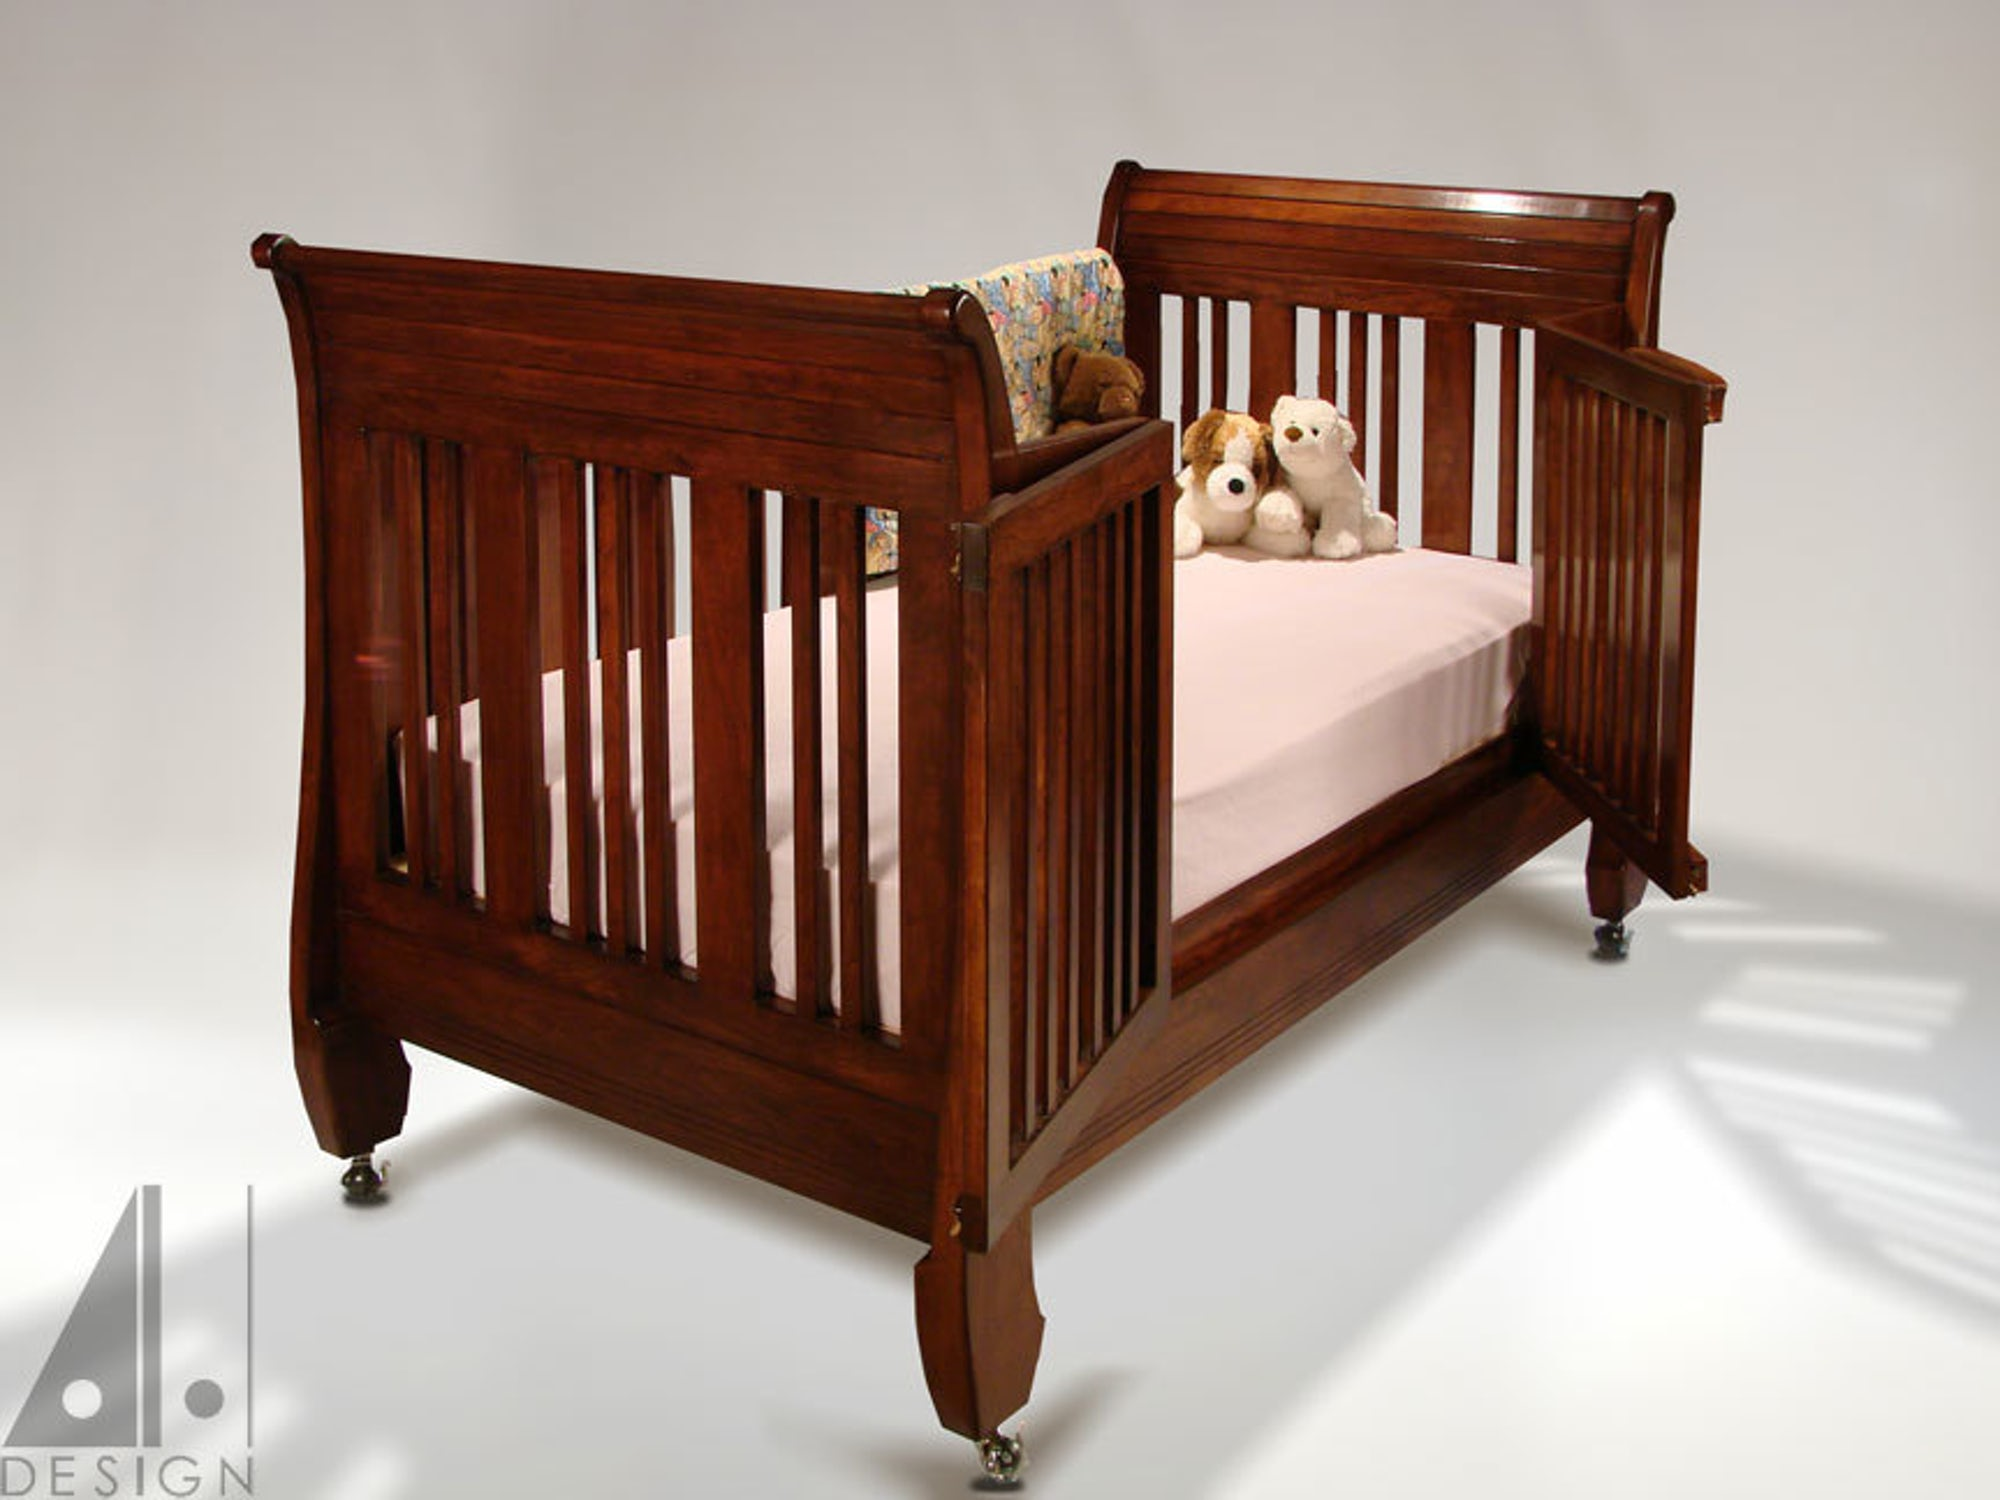 Transformable bed/crib